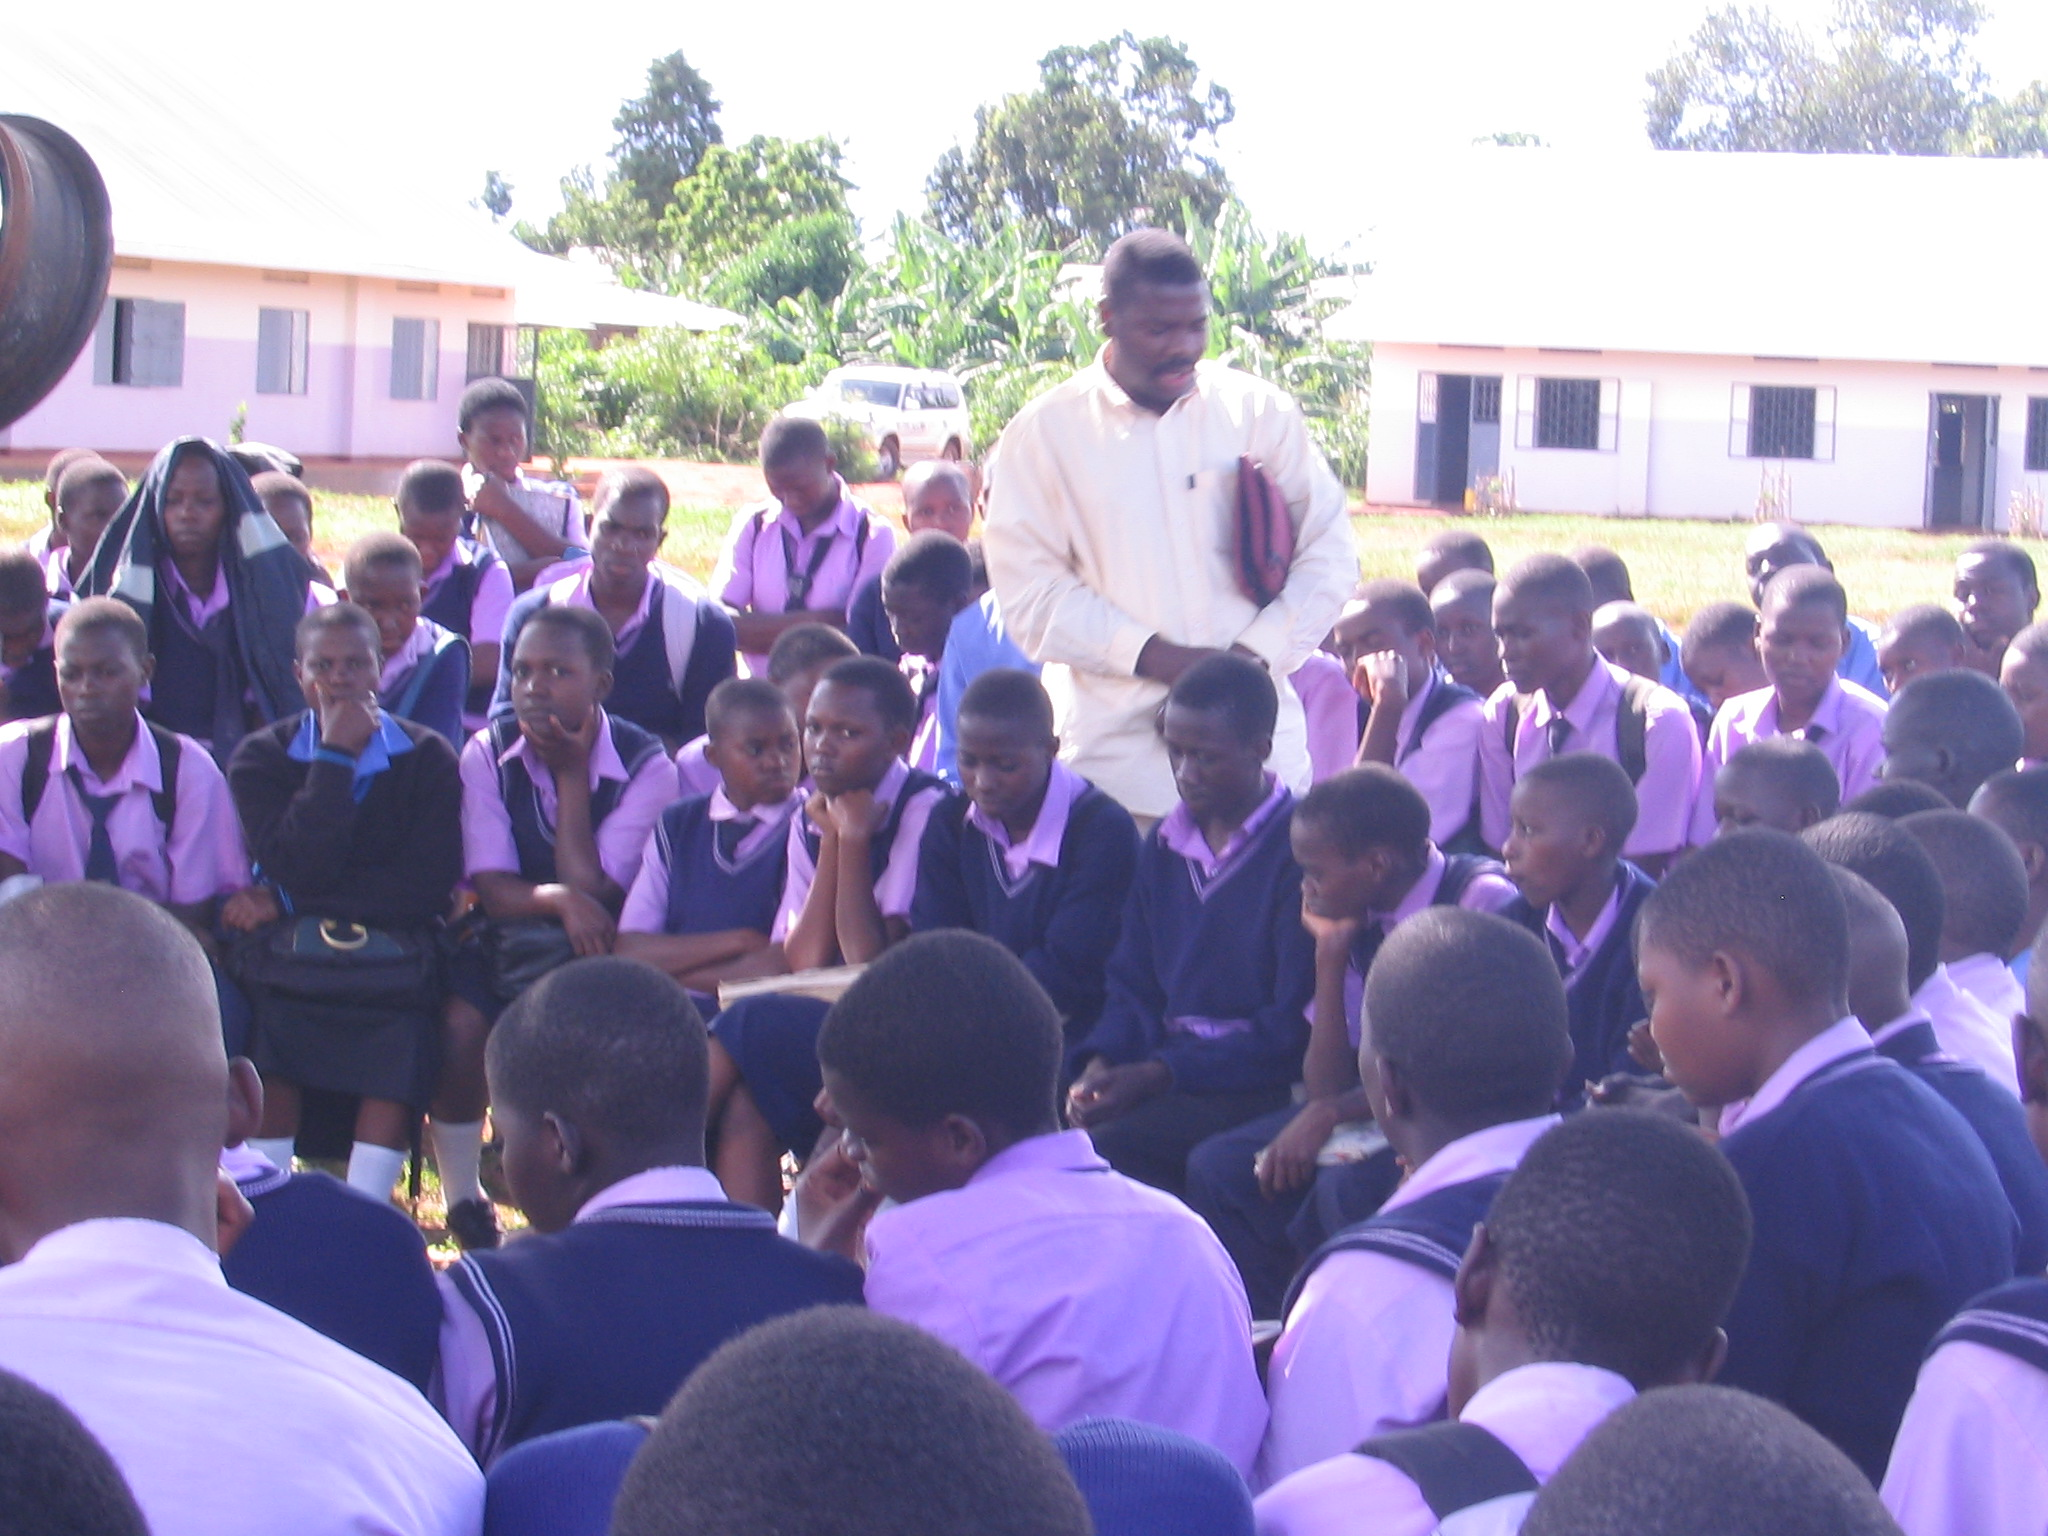 Bible Club with the high school students